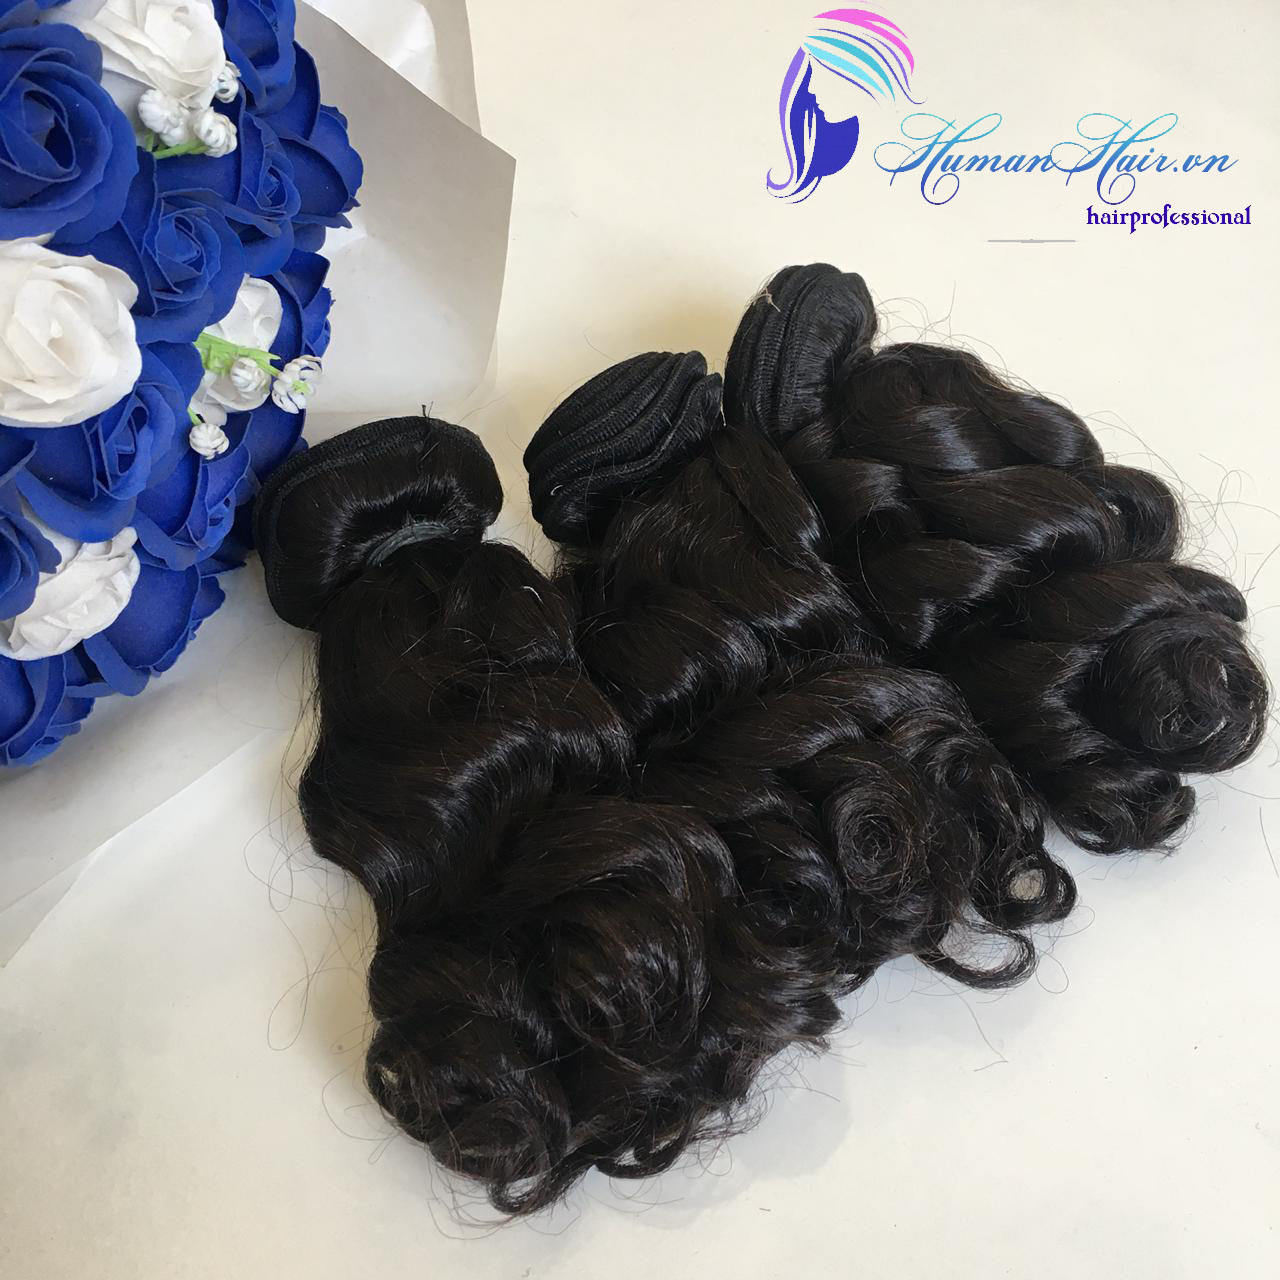 weft hair can last from 6-12 months, and the type of high-tempered hair